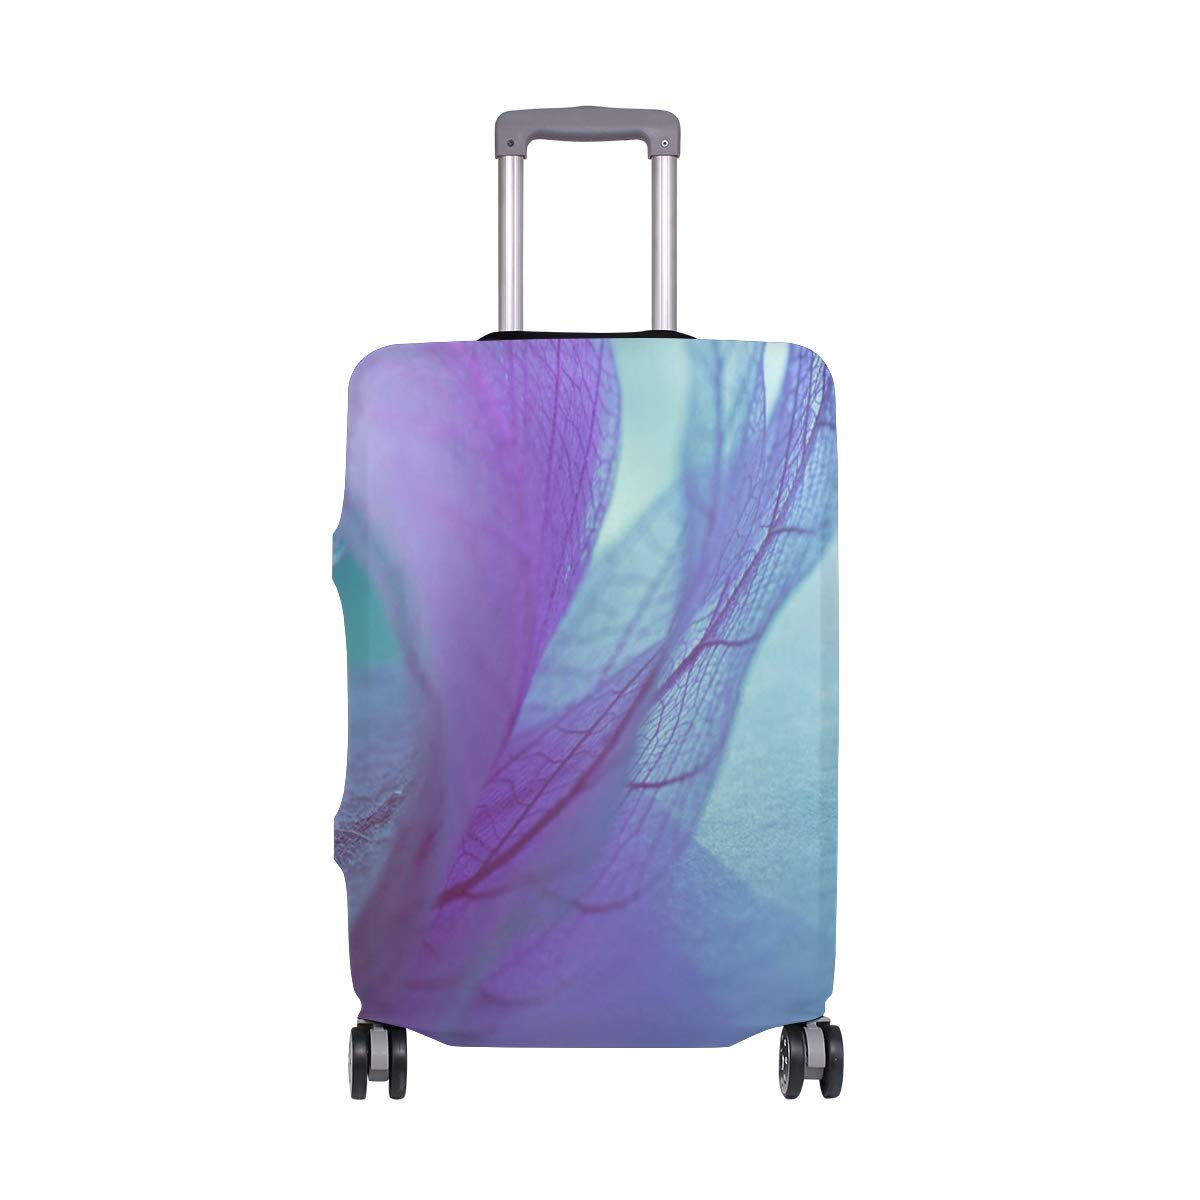 Travel Luggage Cover Transparent Leaf Vein Abstraction Pink Suitcase Protector Fits 18-20 Inch Washable Baggage Covers